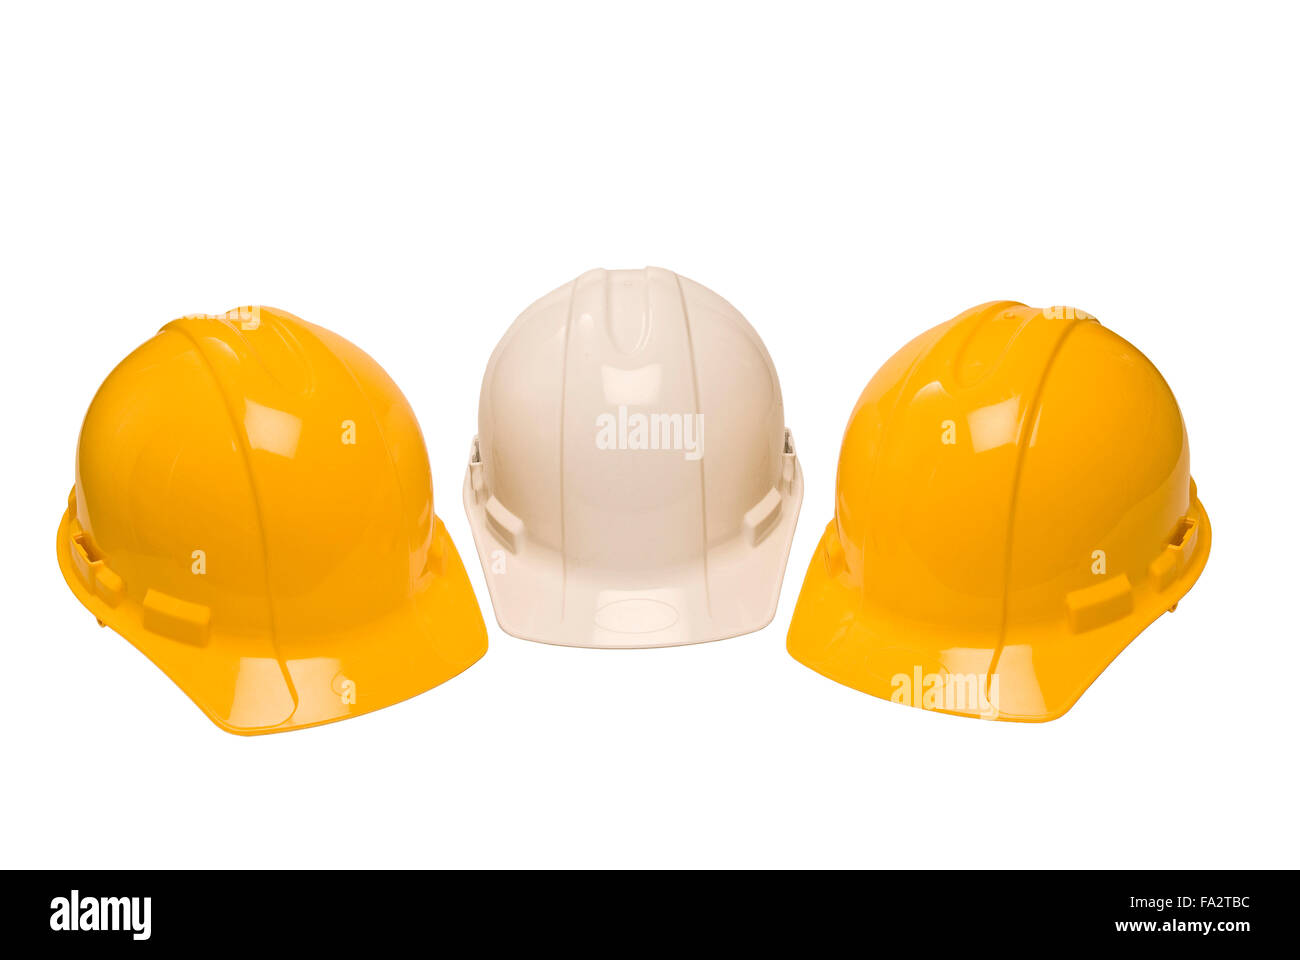 Three Construction Helmets Isolated on White - Stock Image